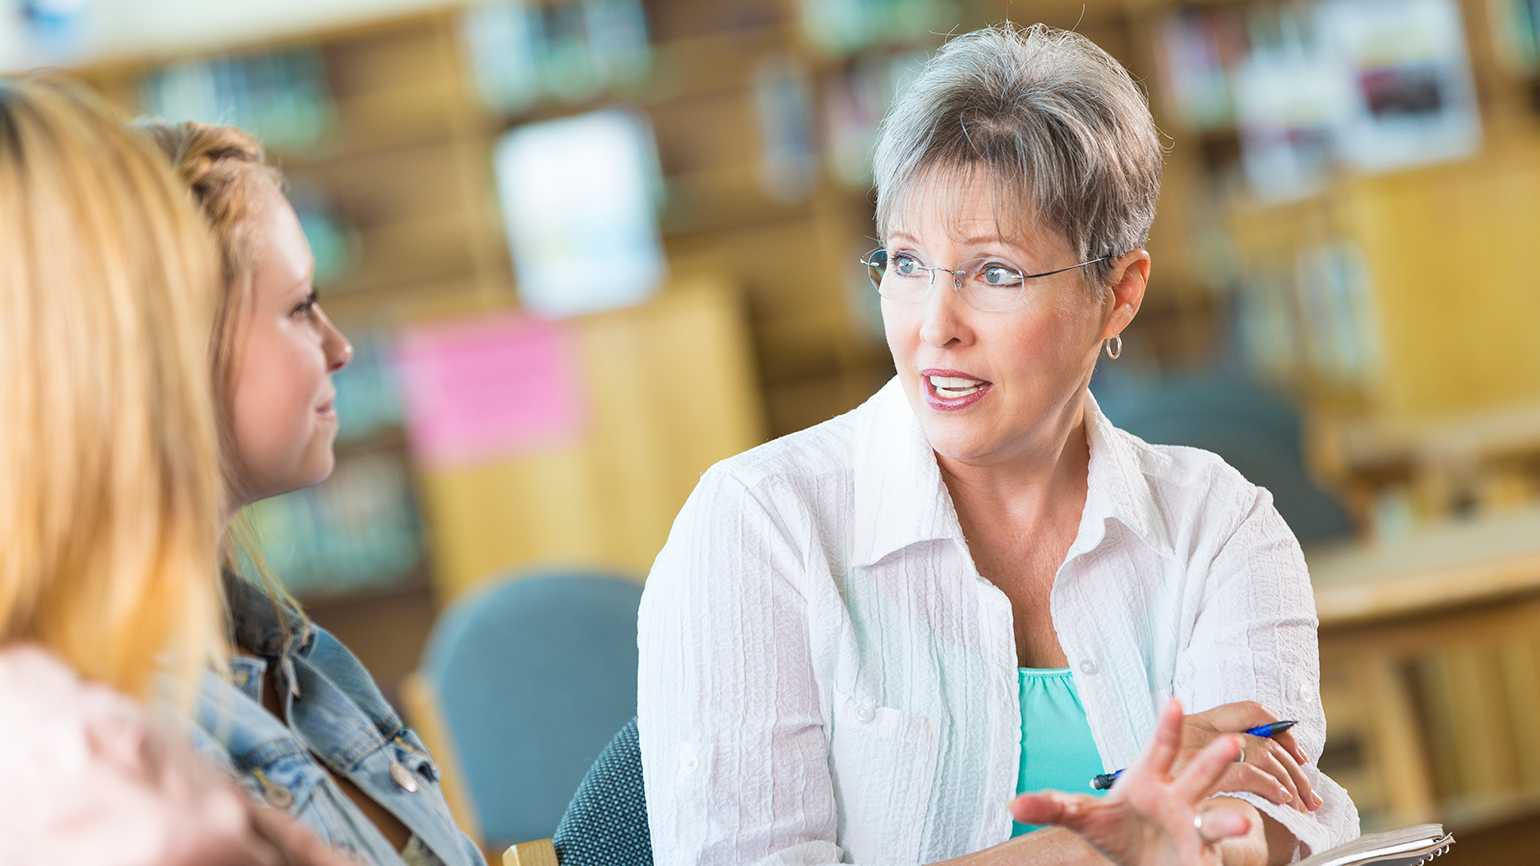 A retiree who now works as a counselor speaks to some of her young clients